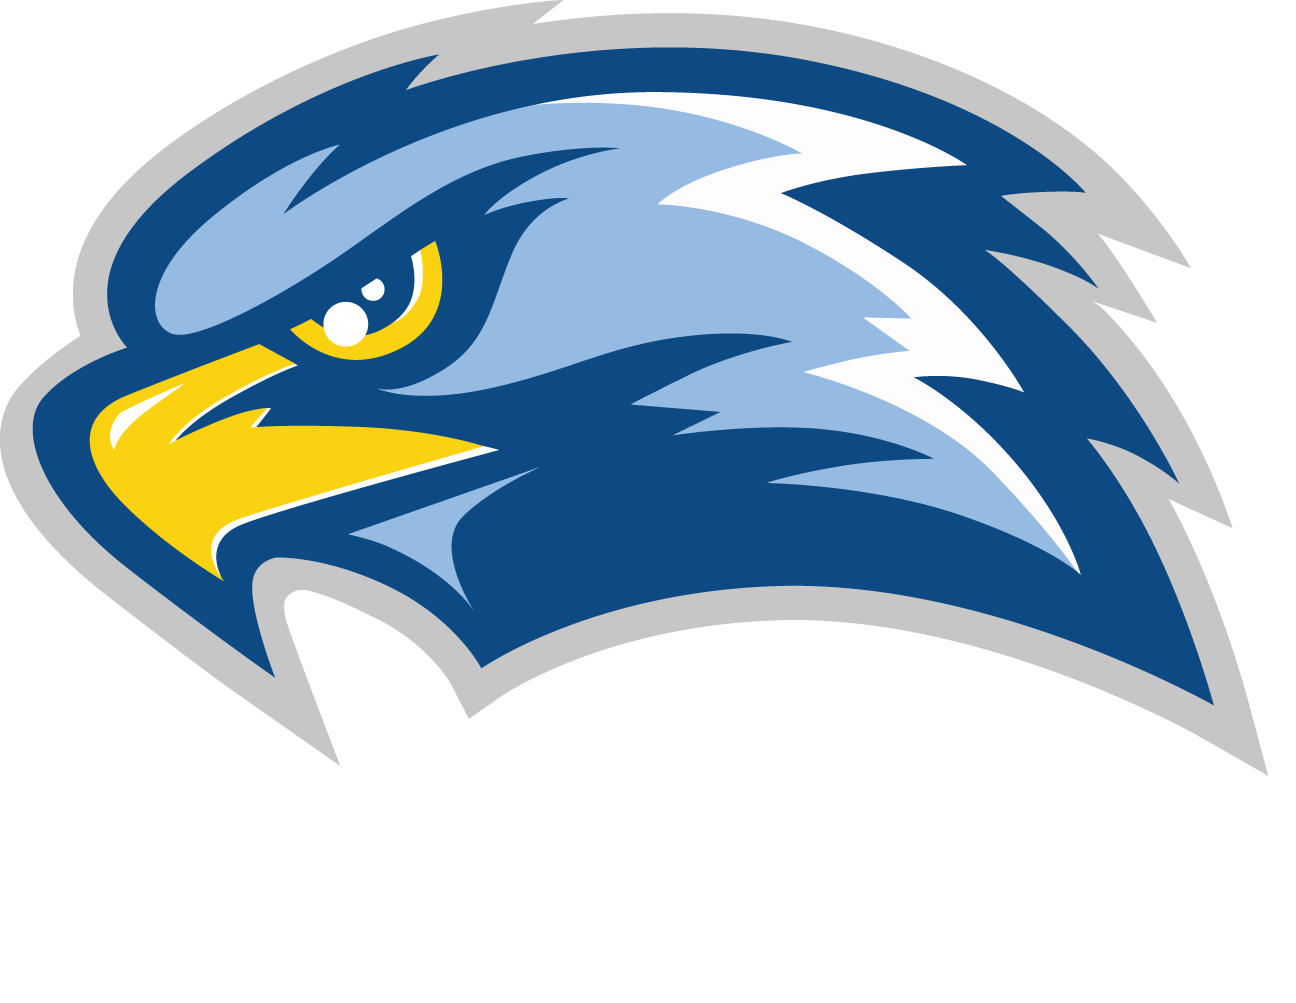 Baseball team swoop clipart clipart free library Bayhawks Select Baseball Team – Seabrook and Houston Texas clipart free library